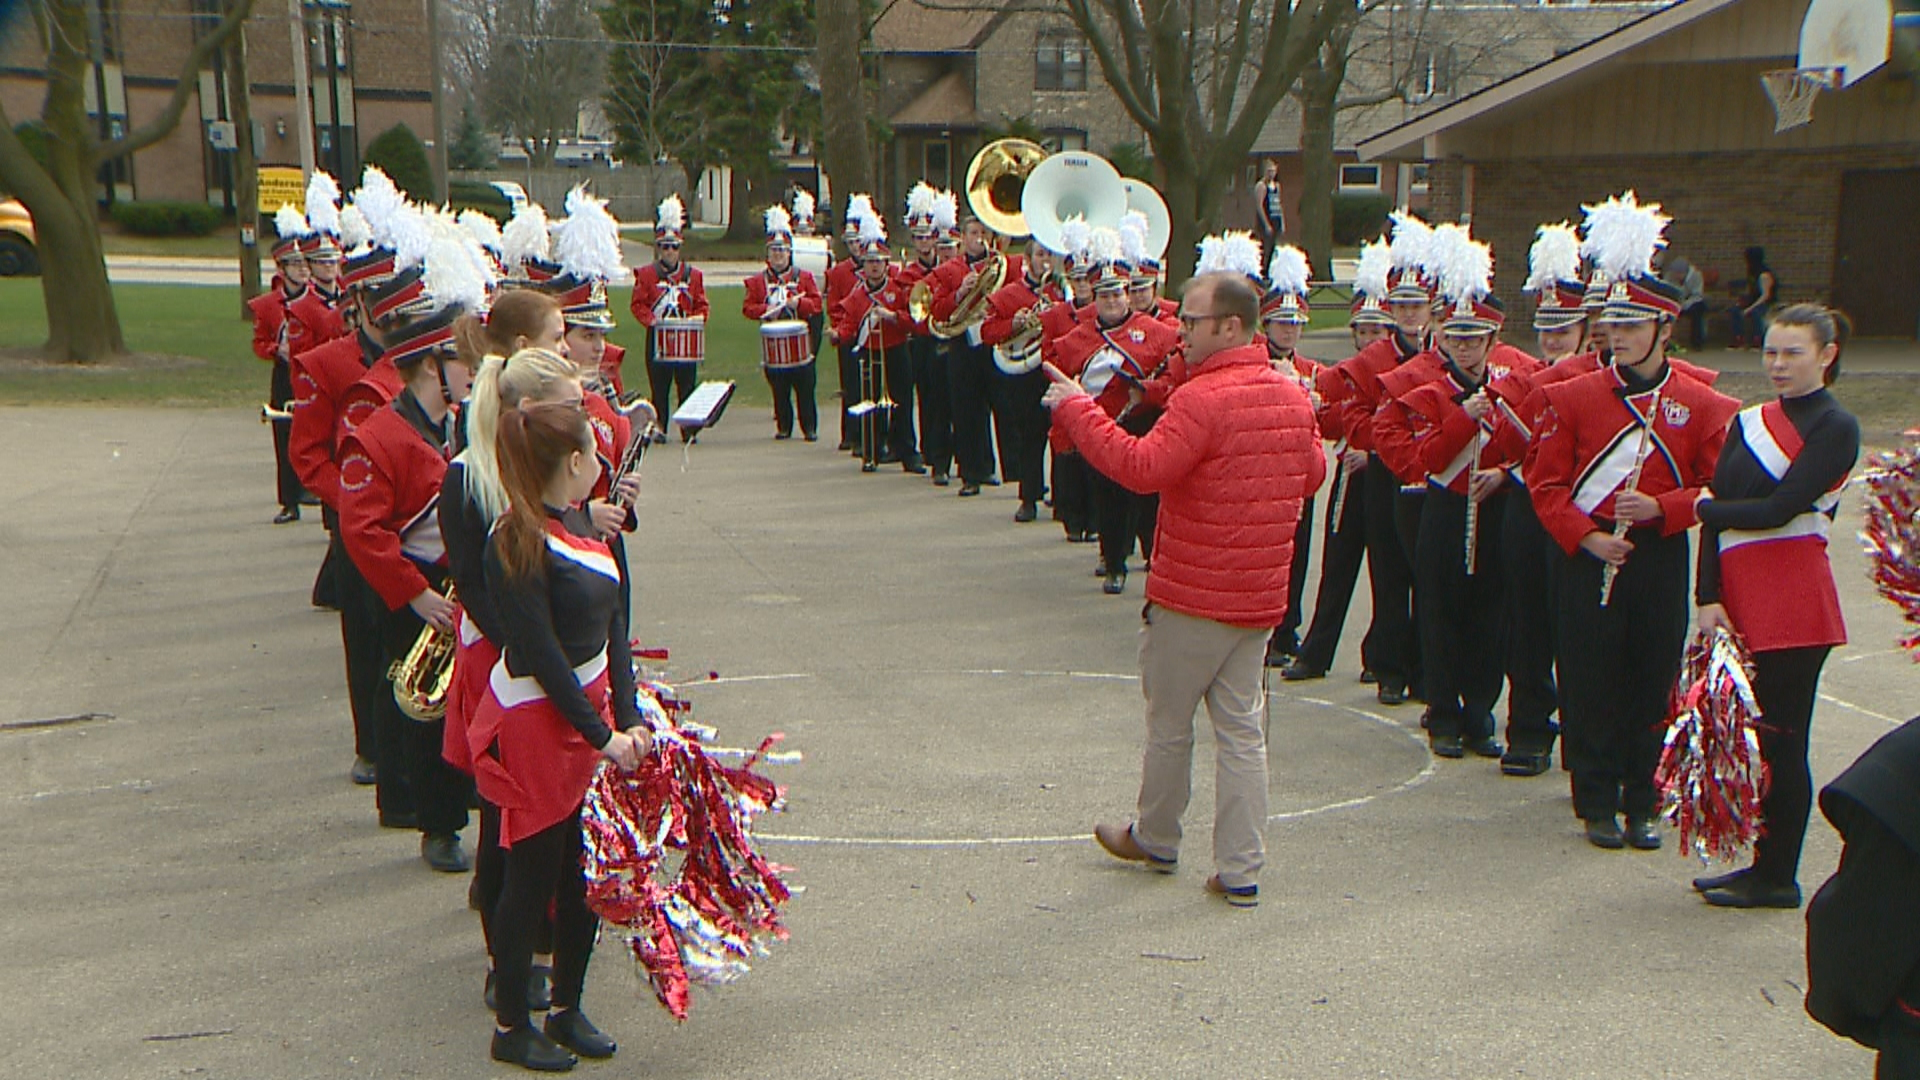 The Lincoln High School Marching Band in Manitowoc performed for Chalice Rosinsky, who is in the advanced stages of Huntington's Disease, at Washington Park for her birthday, April 18, 2017. (WLUK)